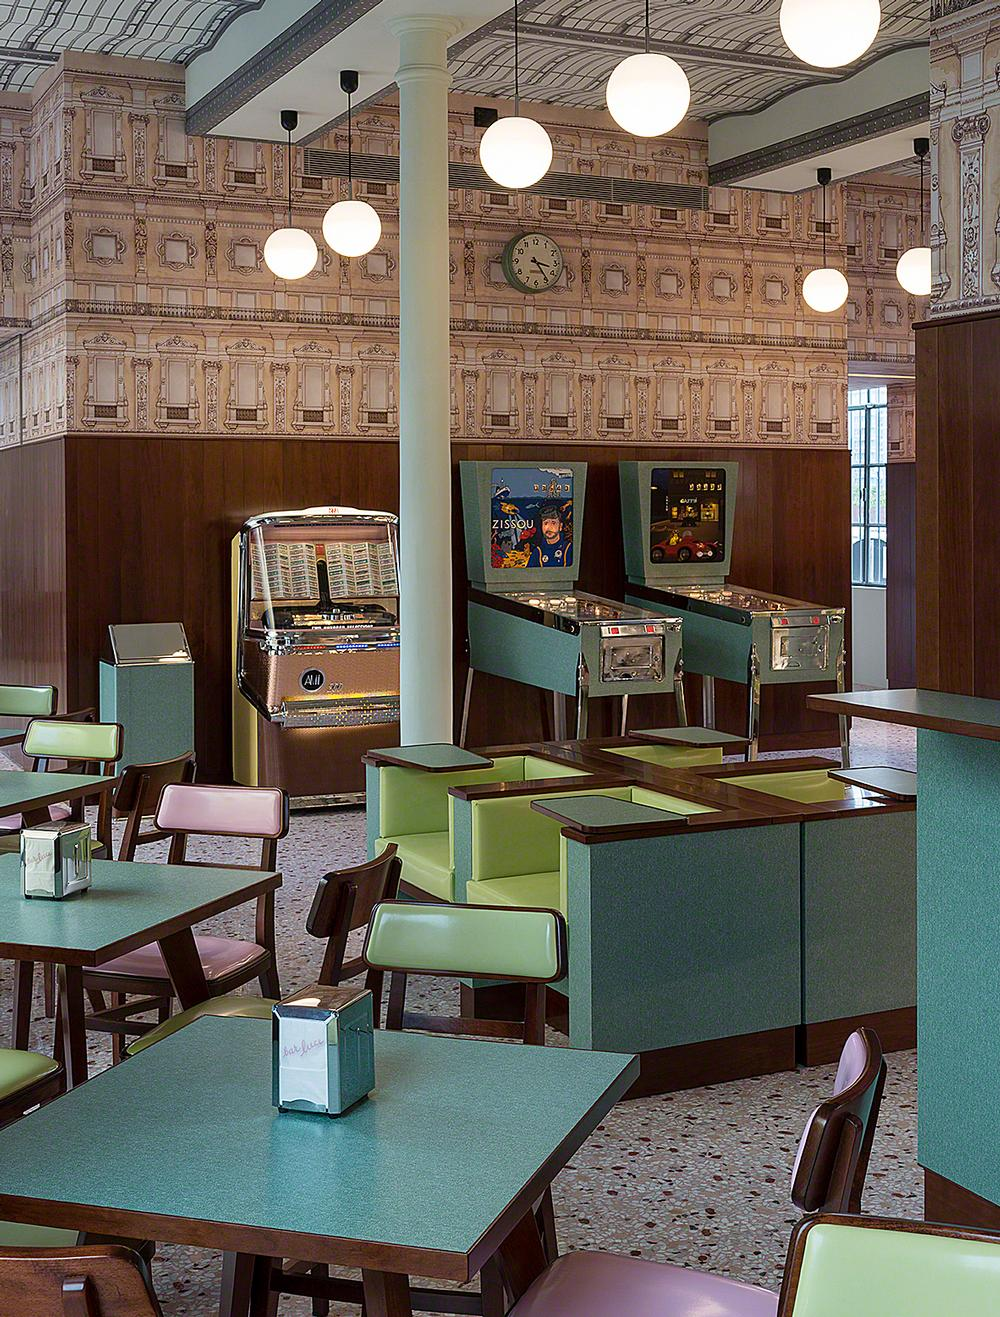 Film director Wes Anderson designed Bar Luce, which features a pinball machine inspired by his film The Life Aquatic / Paul Bruinooge/AP/Press Association